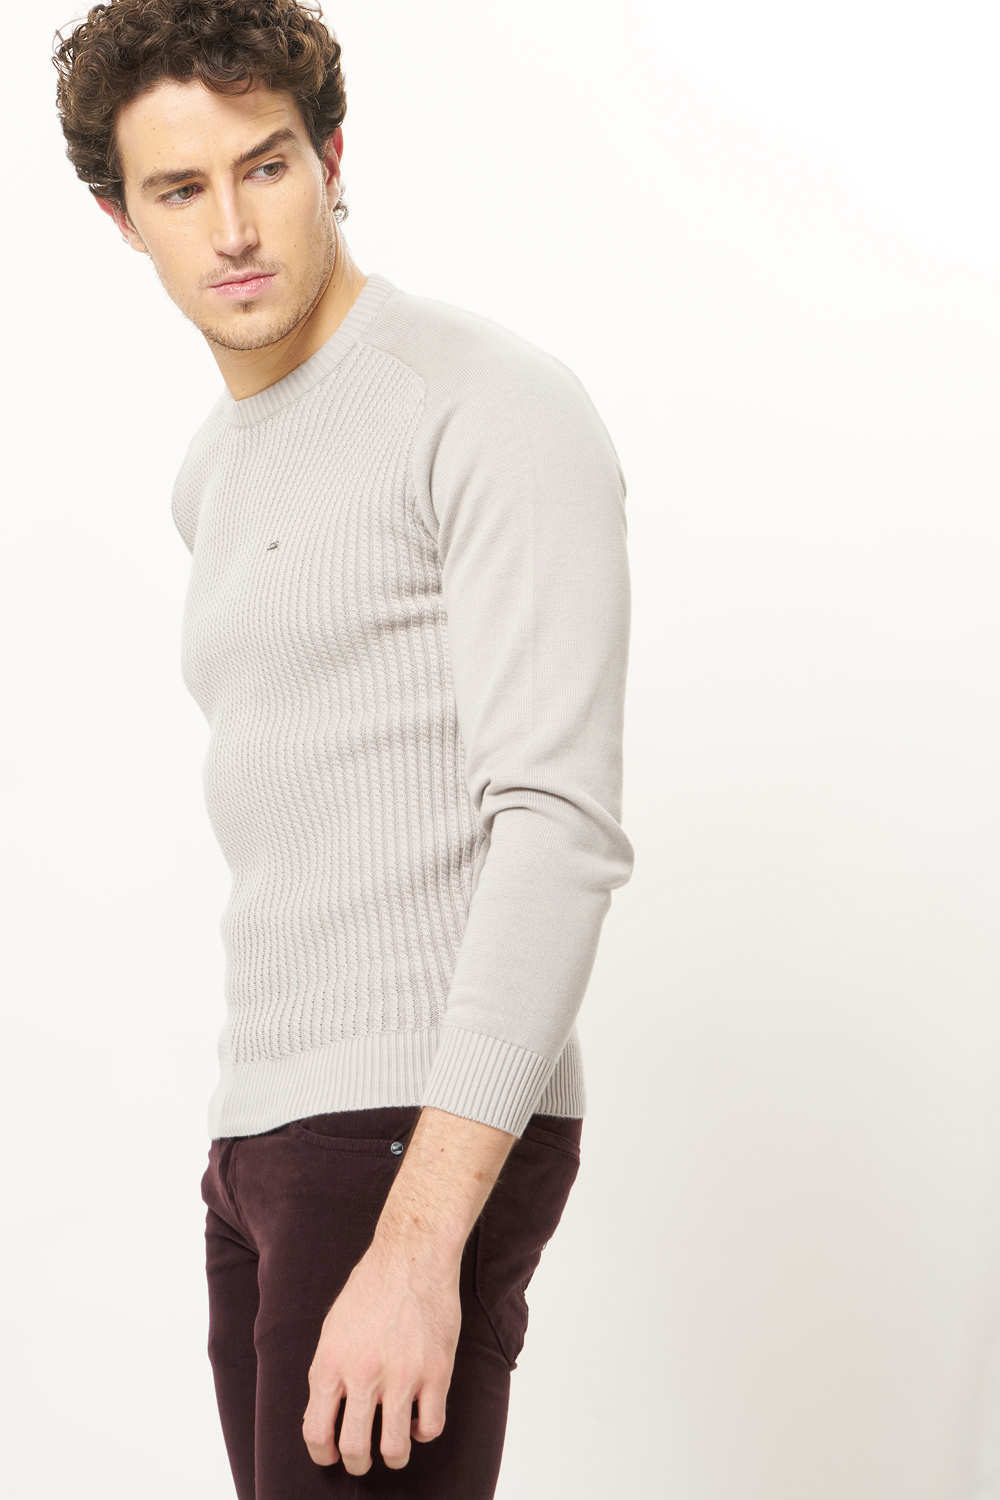 9480a5b5a Basics Muscle Fit Moonlight Crew Neck Sweater-17bsw36948